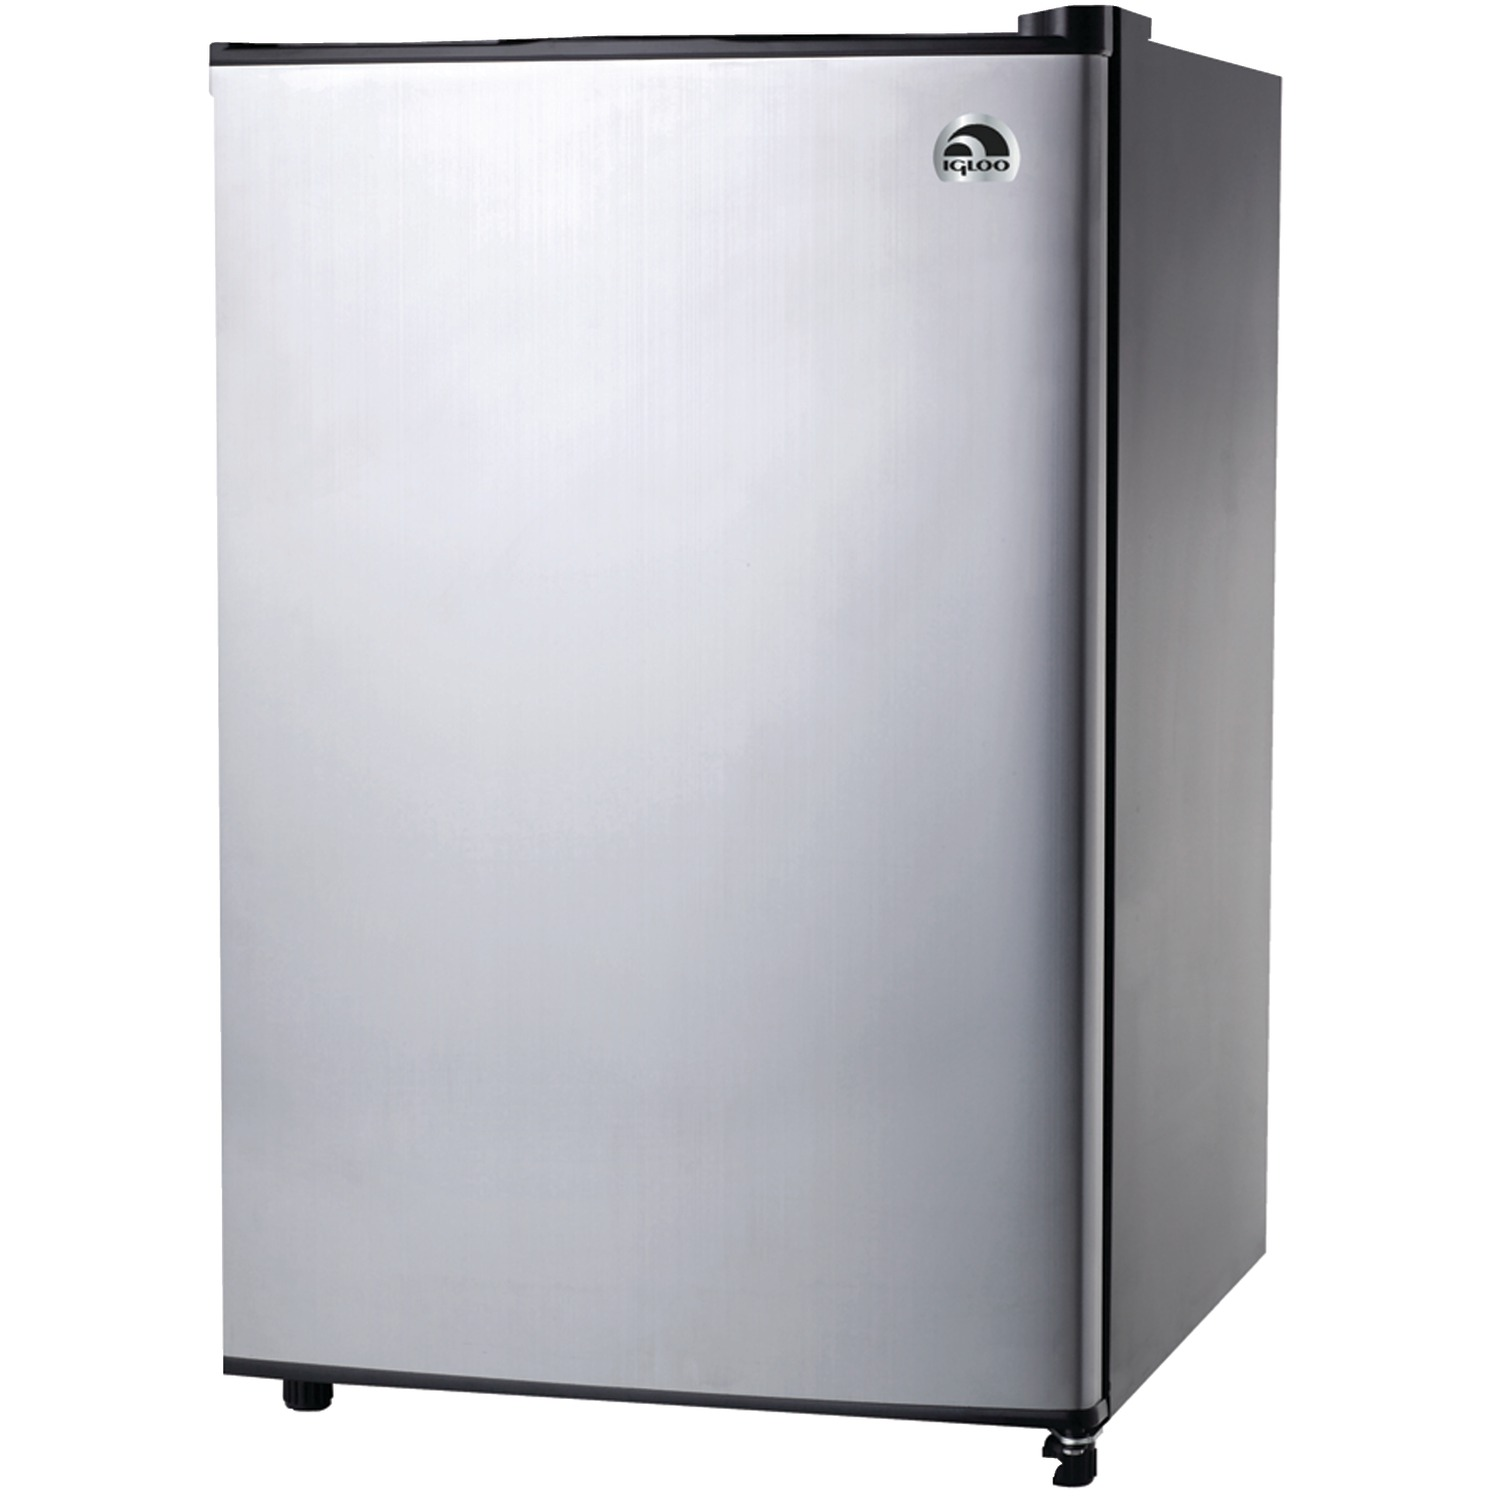 Igloo 3.2 Cubic-ft Refrigerator With Platinum Finish